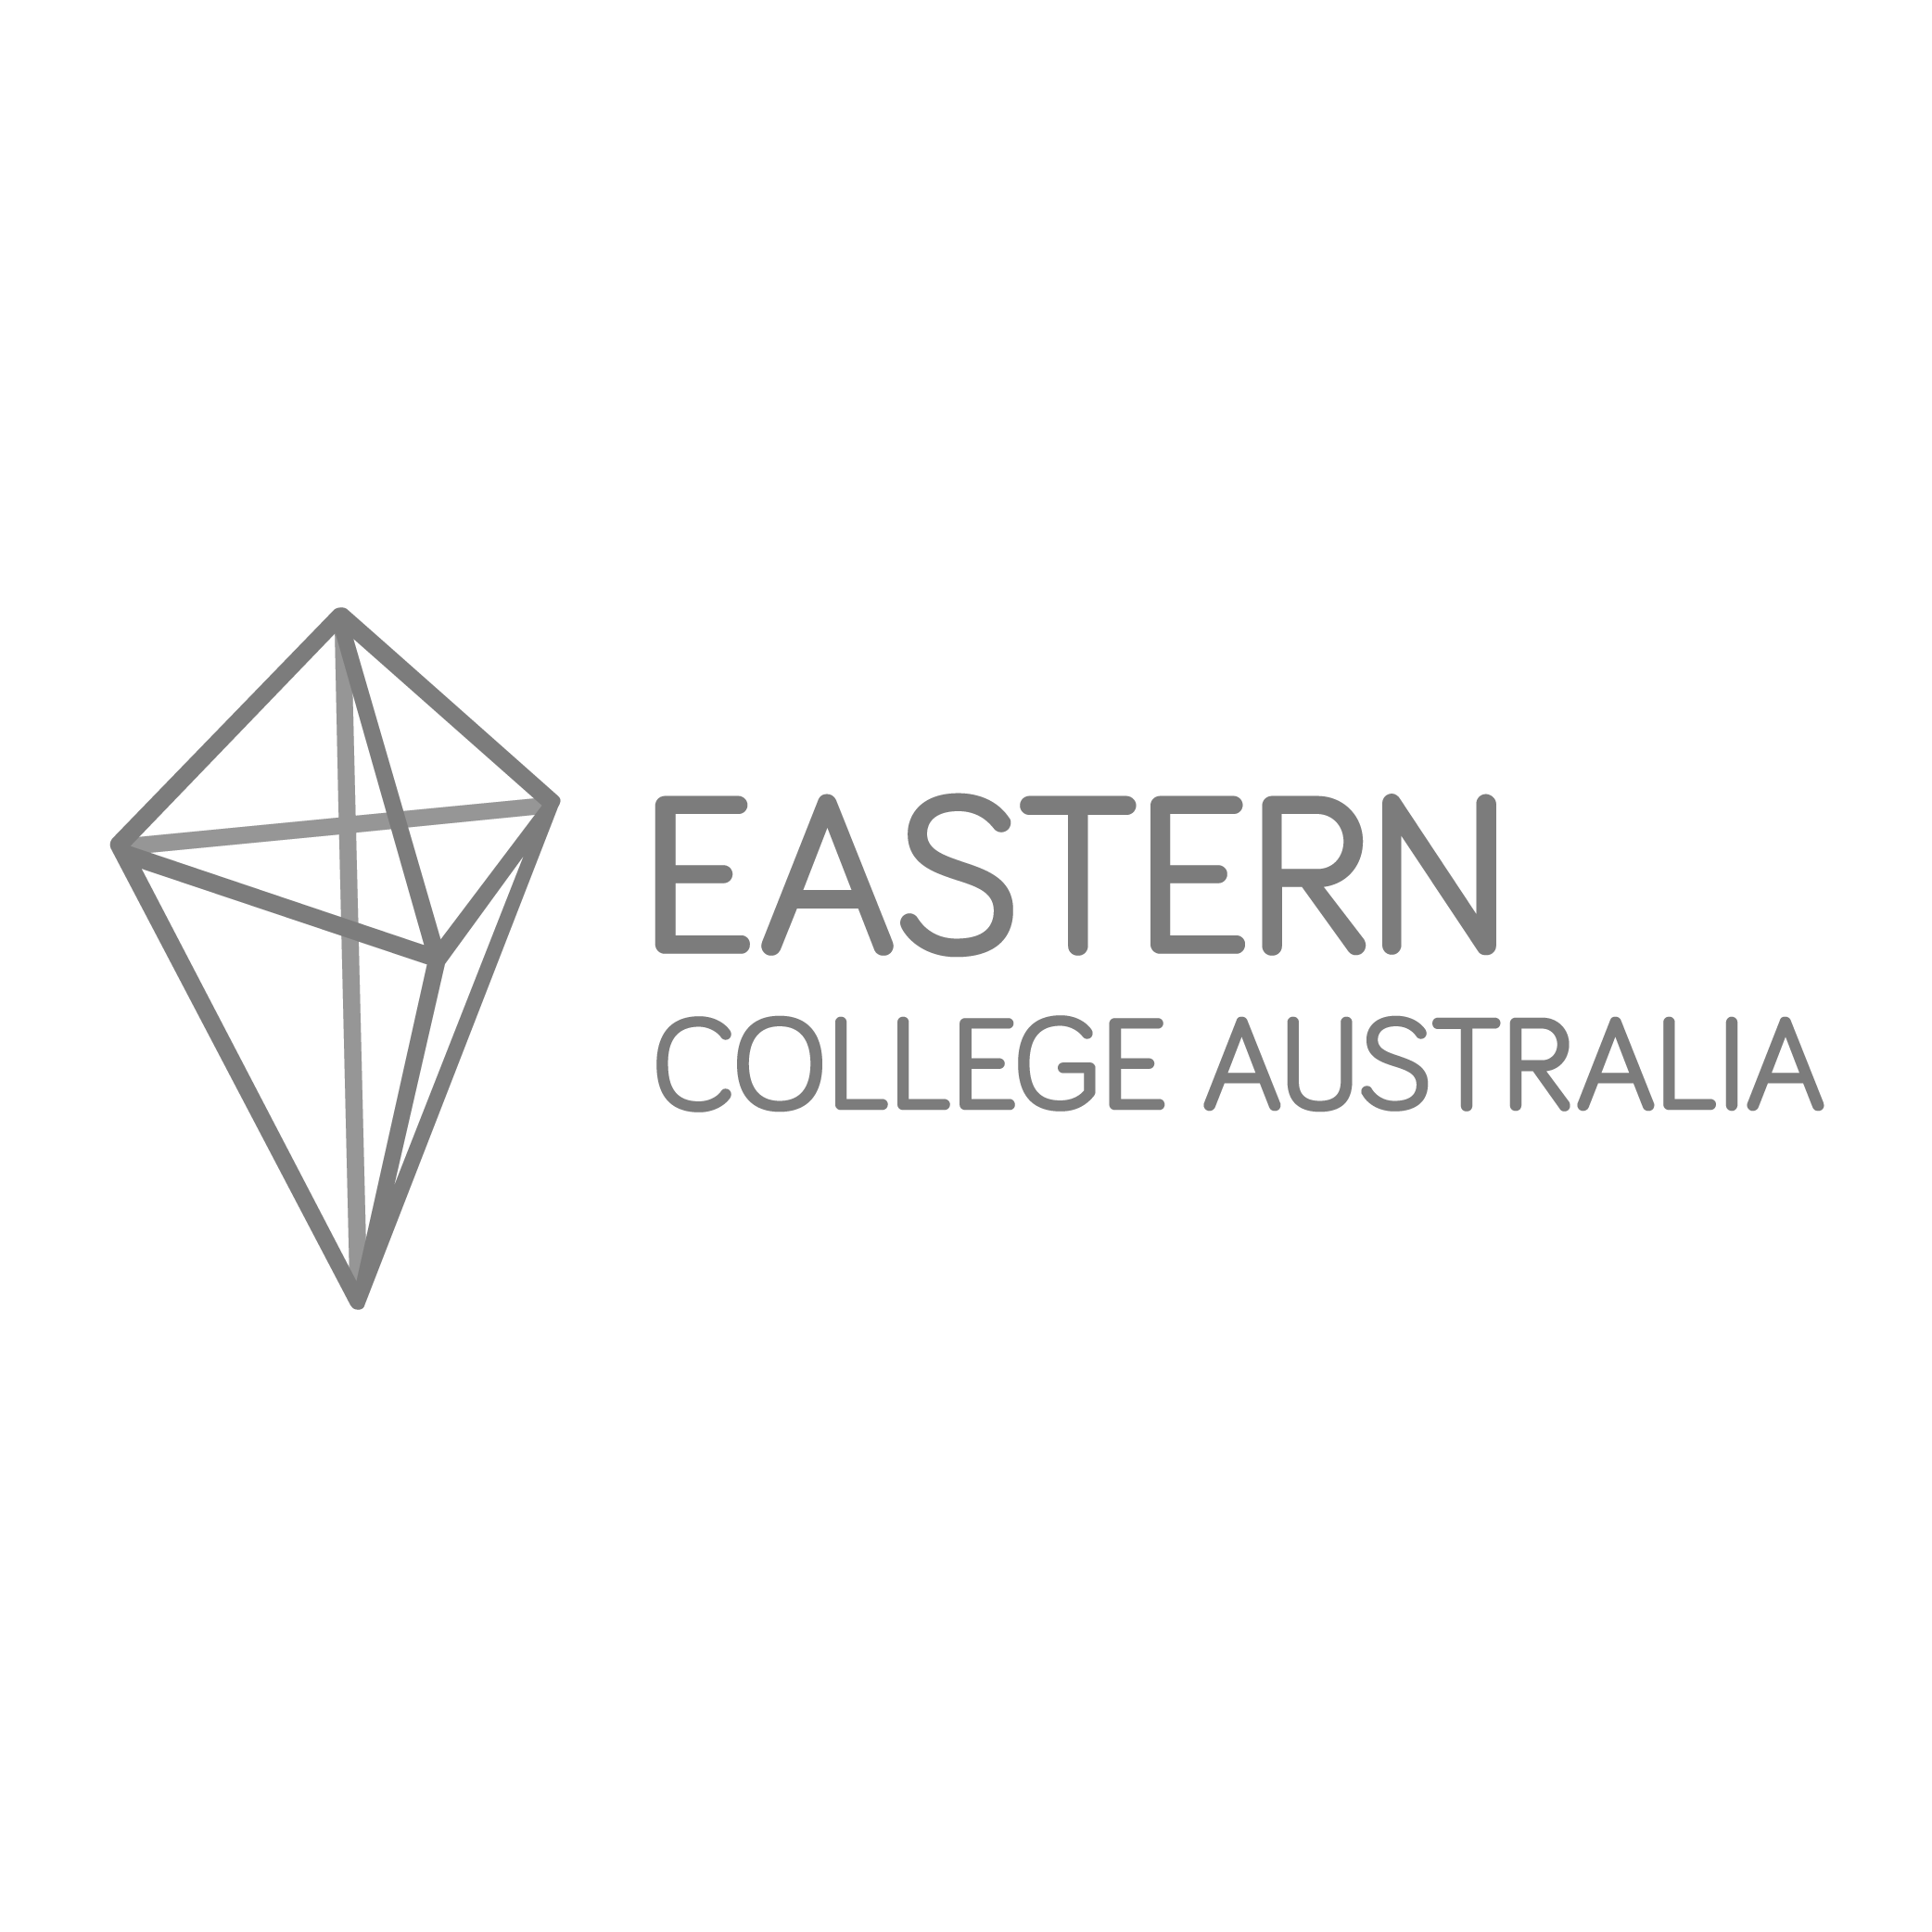 College Logos Square-Eastern